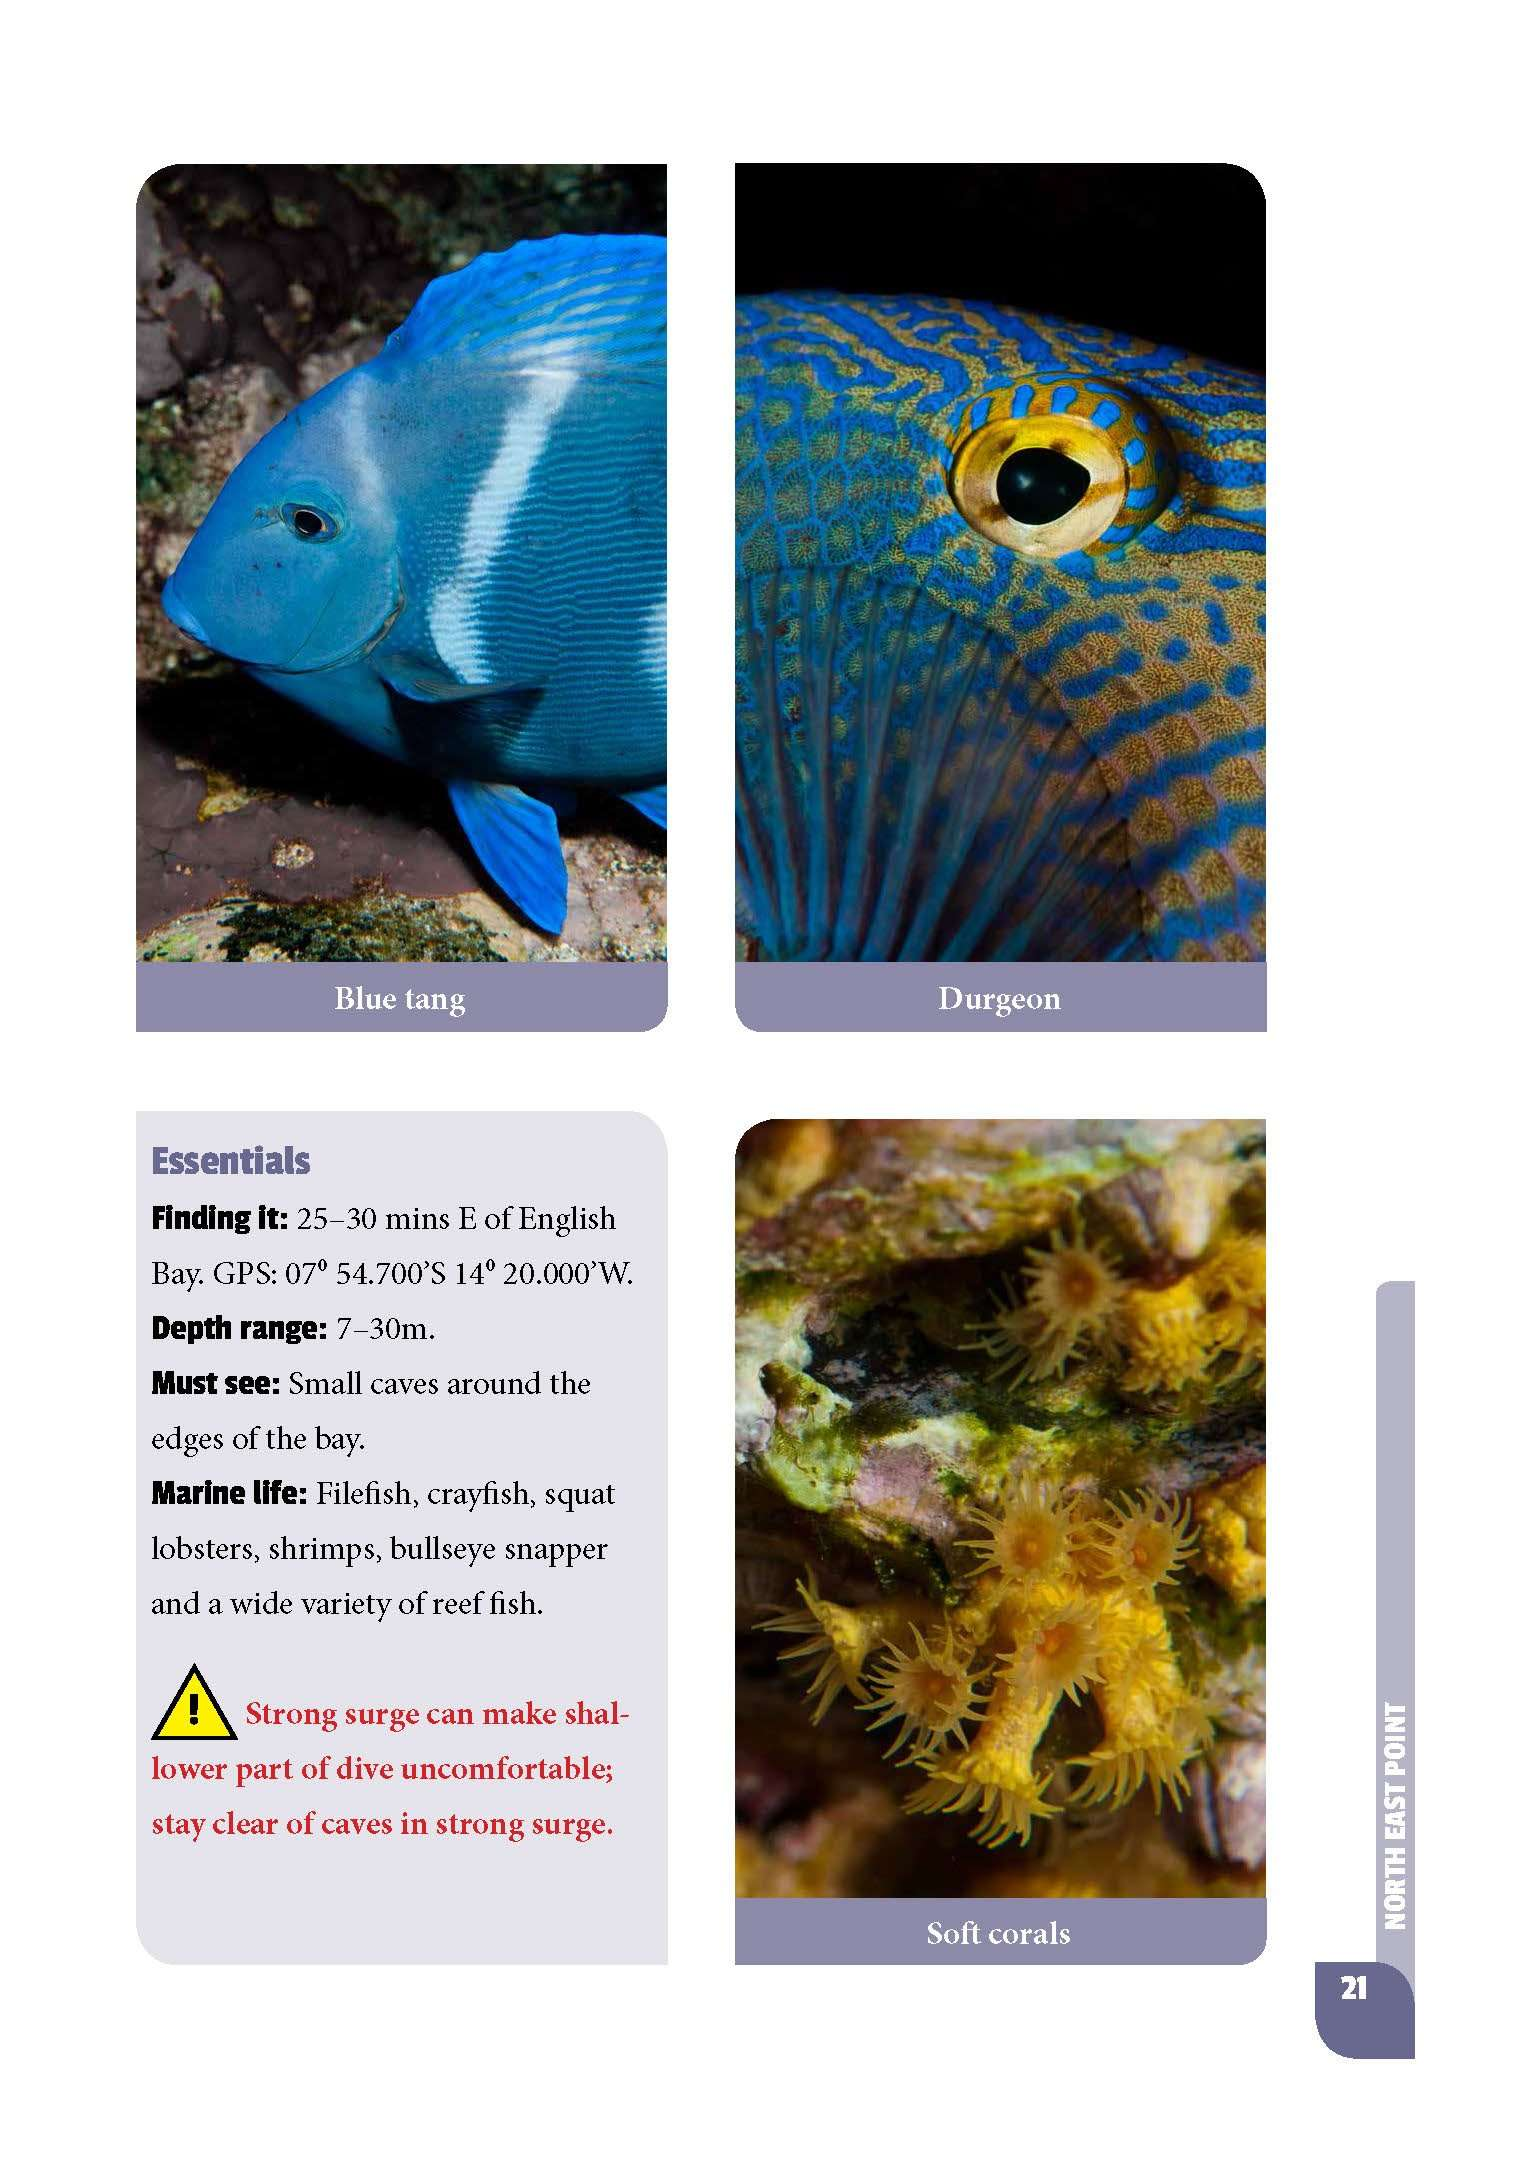 Sample page from Diving and Snorkelling Ascension Island